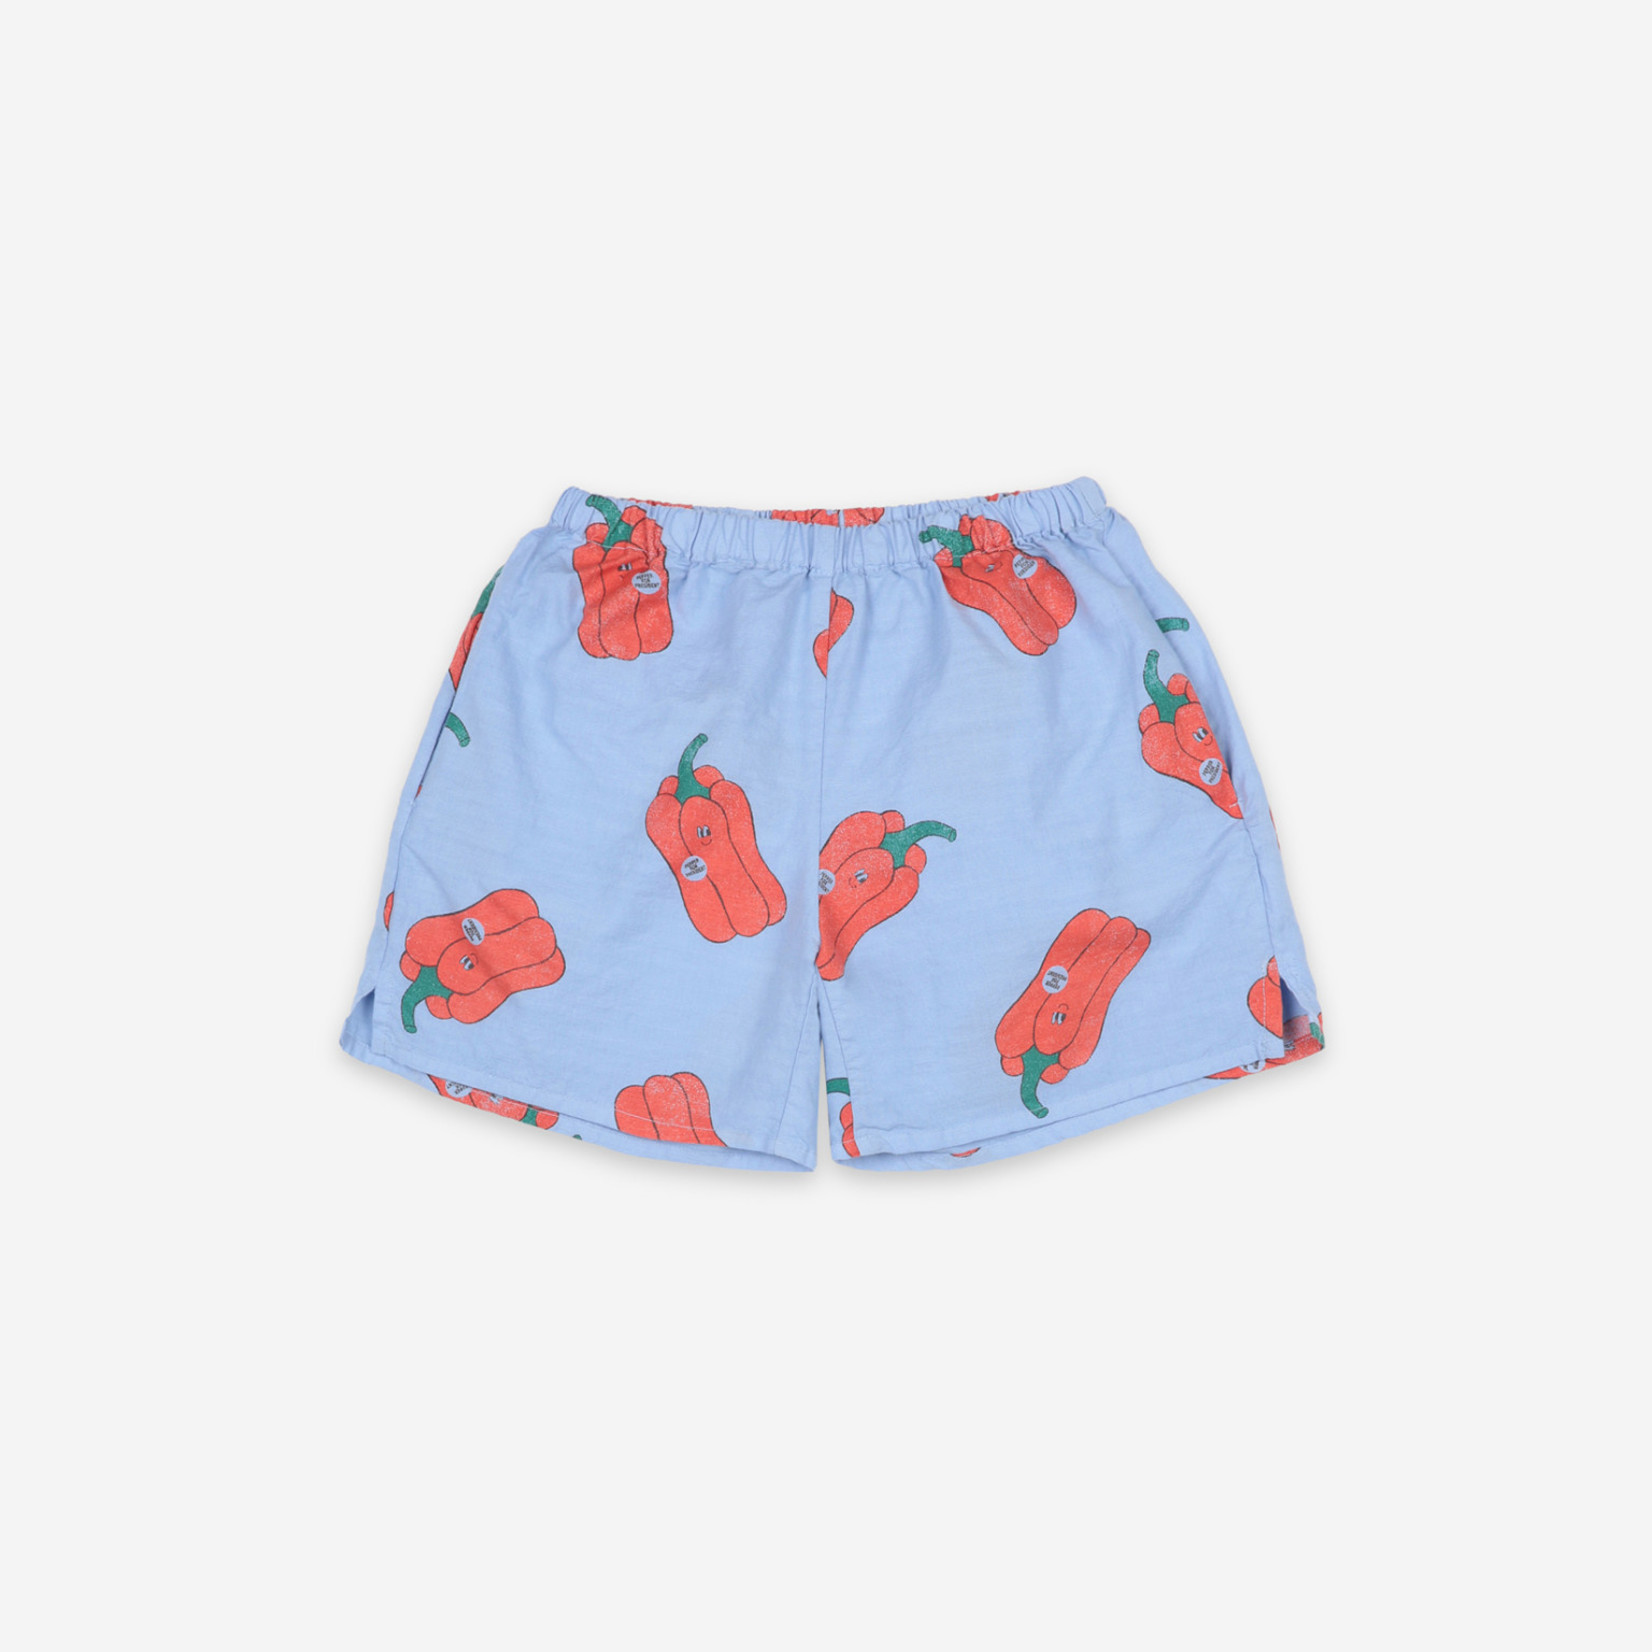 BOBO CHOSES BOBO CHOSES  SHORTS/WOVEN  pepper